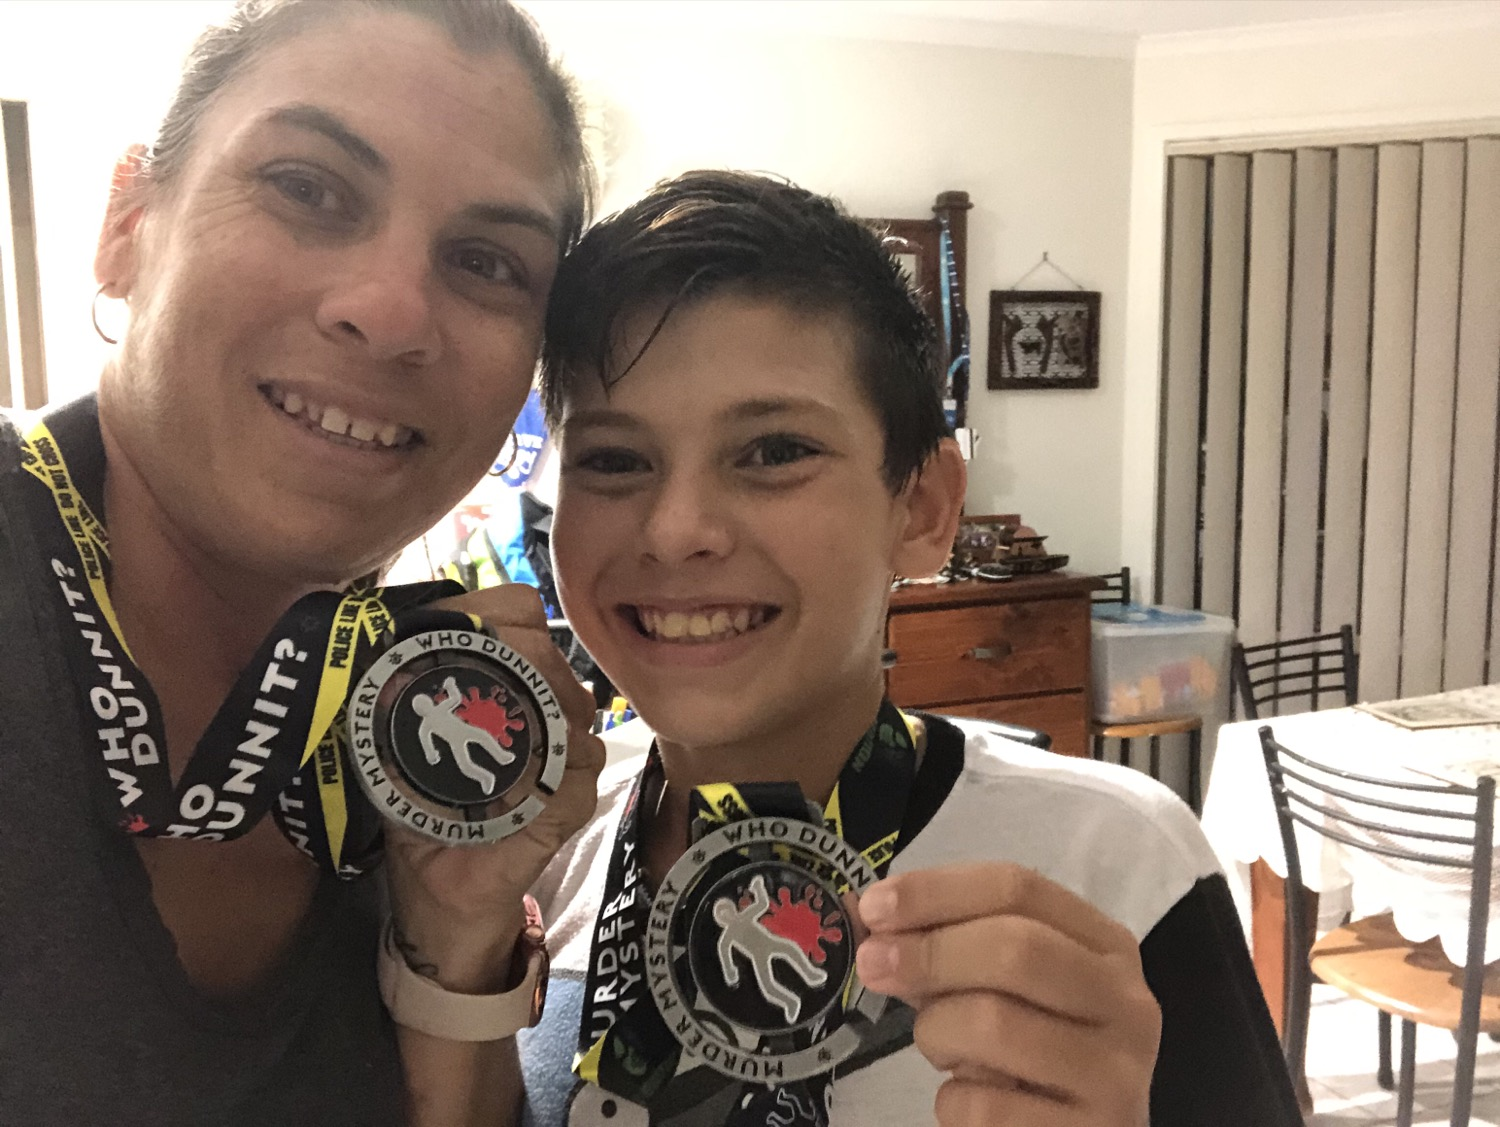 runnovation medallist mother and son